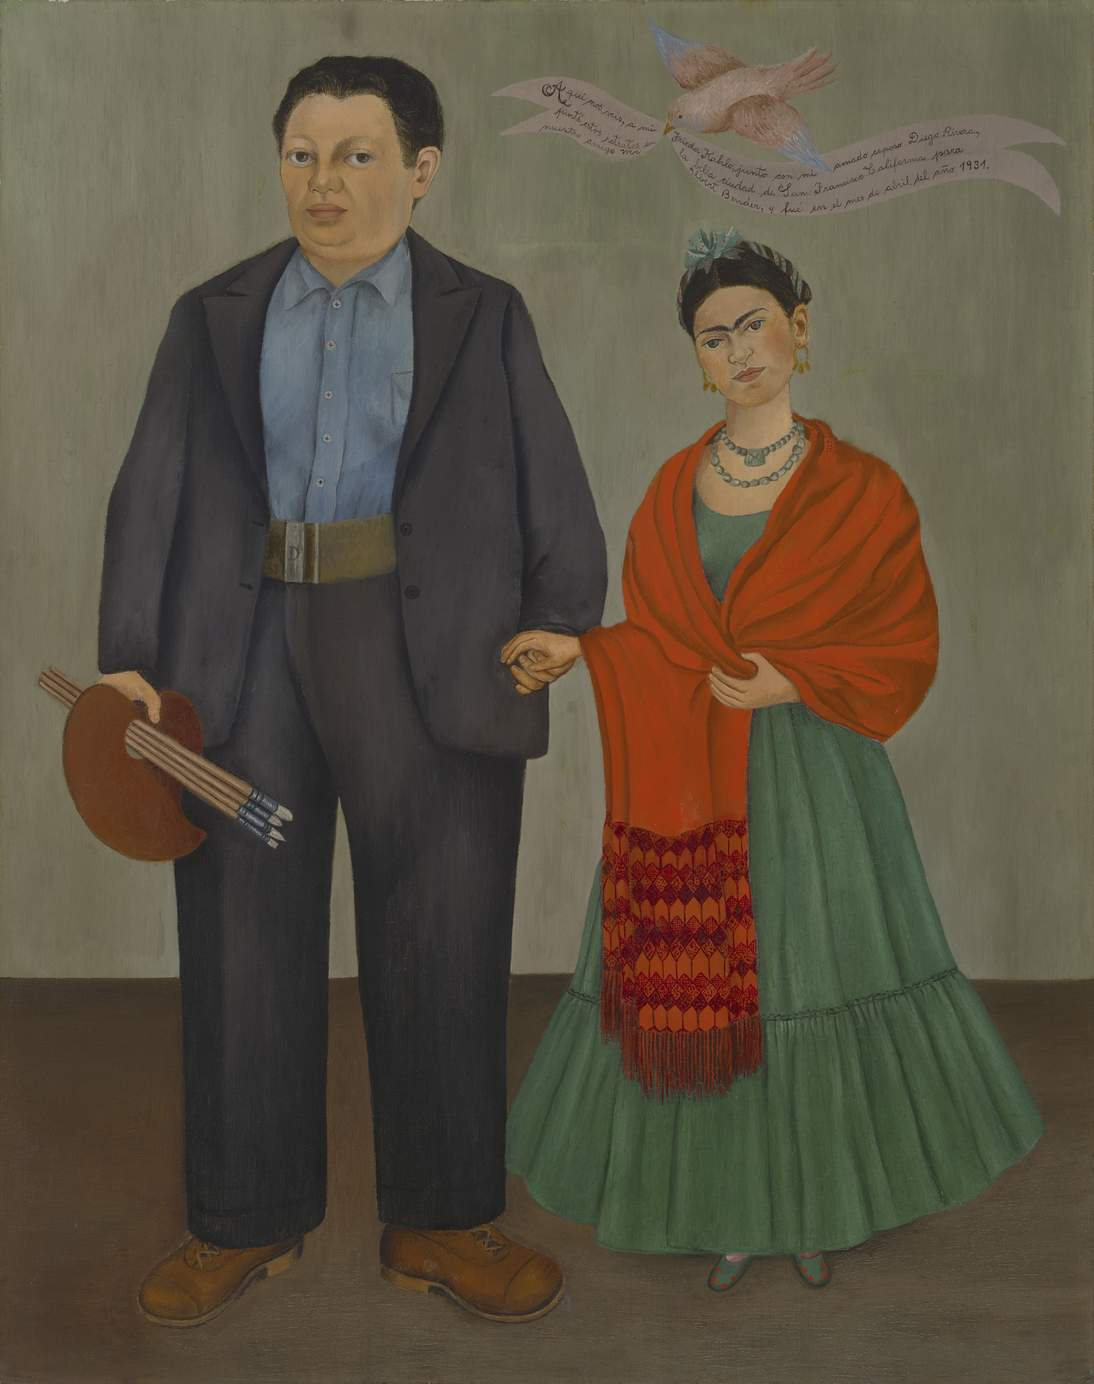 "Frida Kahlo, ""Frieda and Diego Rivera,"" 1931. Oil on canvas, 39 3/8 x 31 in. (100 x 78.7 cm). San Francisco Museum of Modern Art, Albert M. Bender Collection, gift of Albert M. Bender © 2020 Banco de México Diego Rivera & Frida Kahlo Museums Trust. Av. 5 de Mayo No. 2, Col. Centro, alc. Cuauhtémoc, C.P. 06000, Mexico City. Artist Rights Society (ARS), New York, photo: Ben Blackwell"